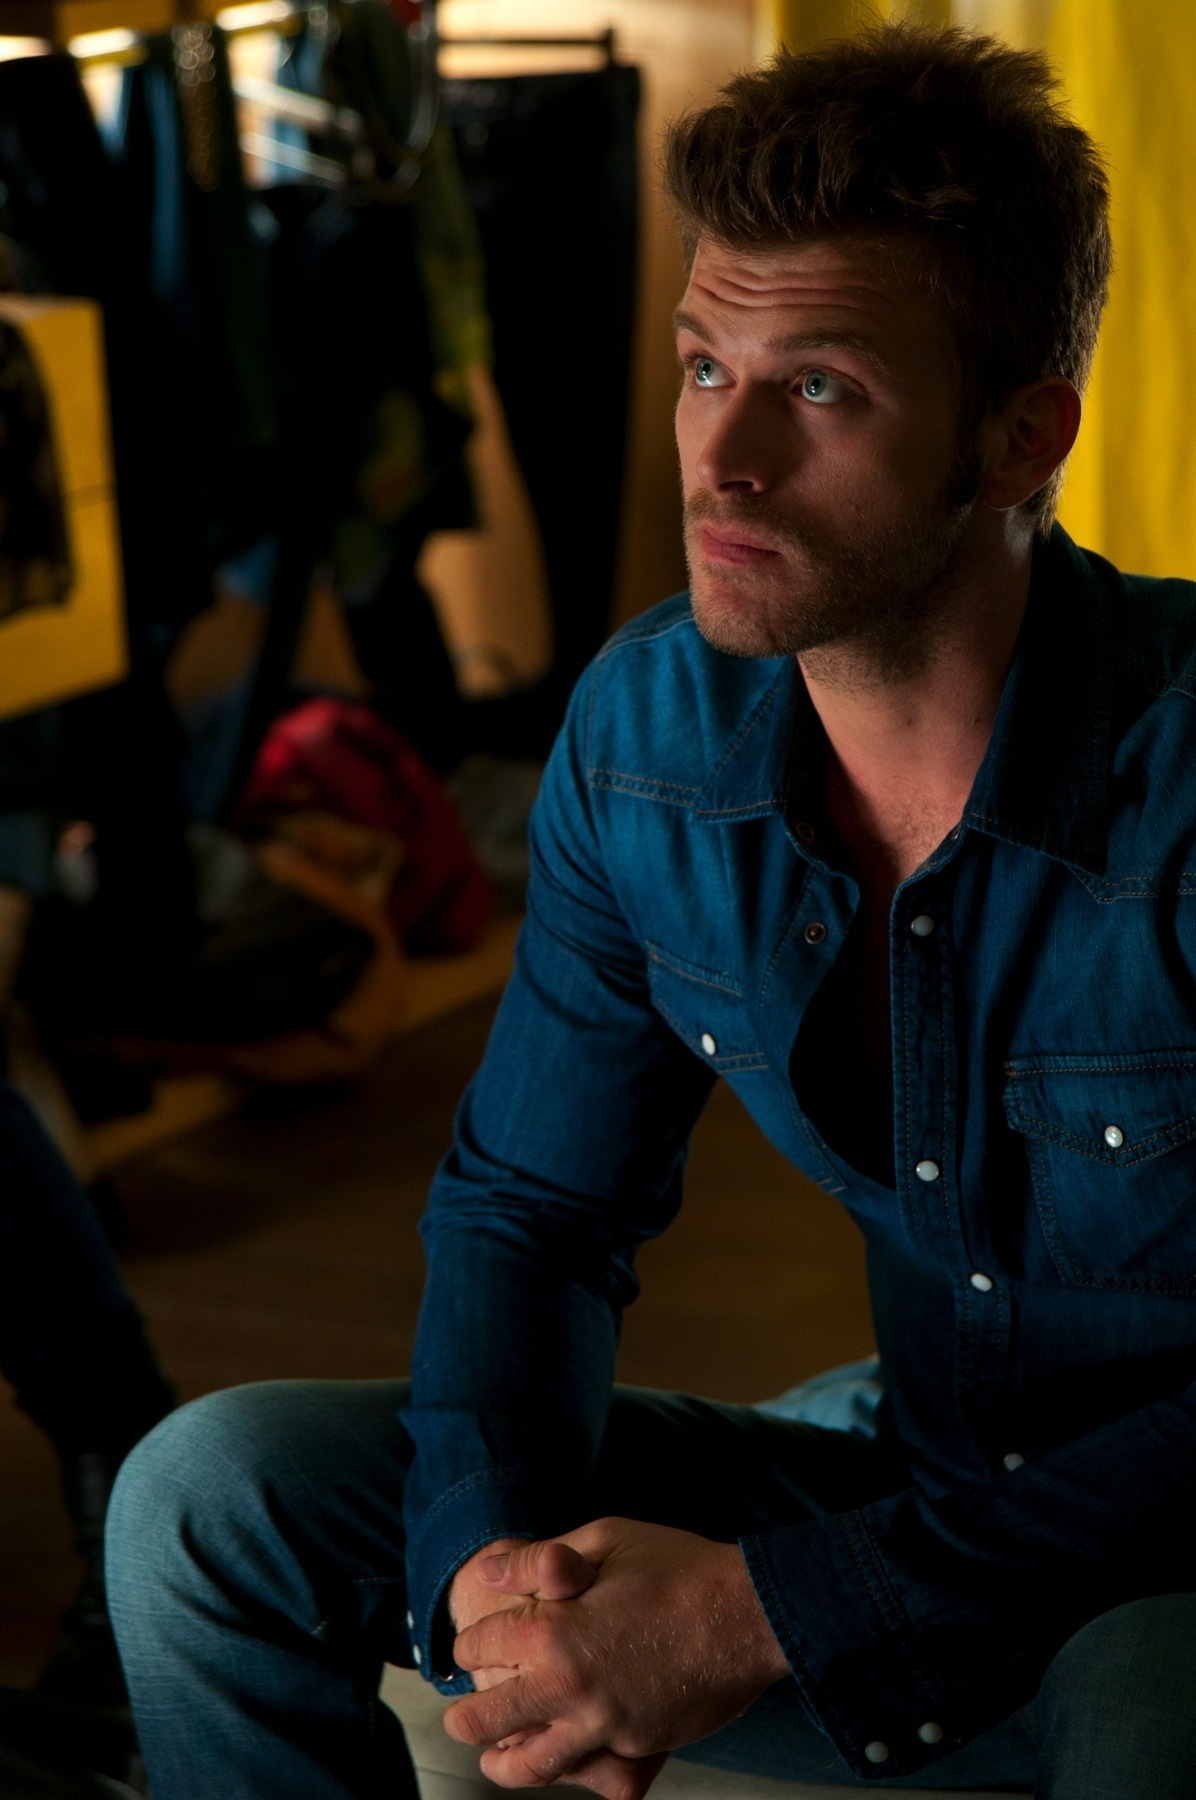 Tatlitug Kuzey Guney Reclame Behind Scene Kivanc Photo